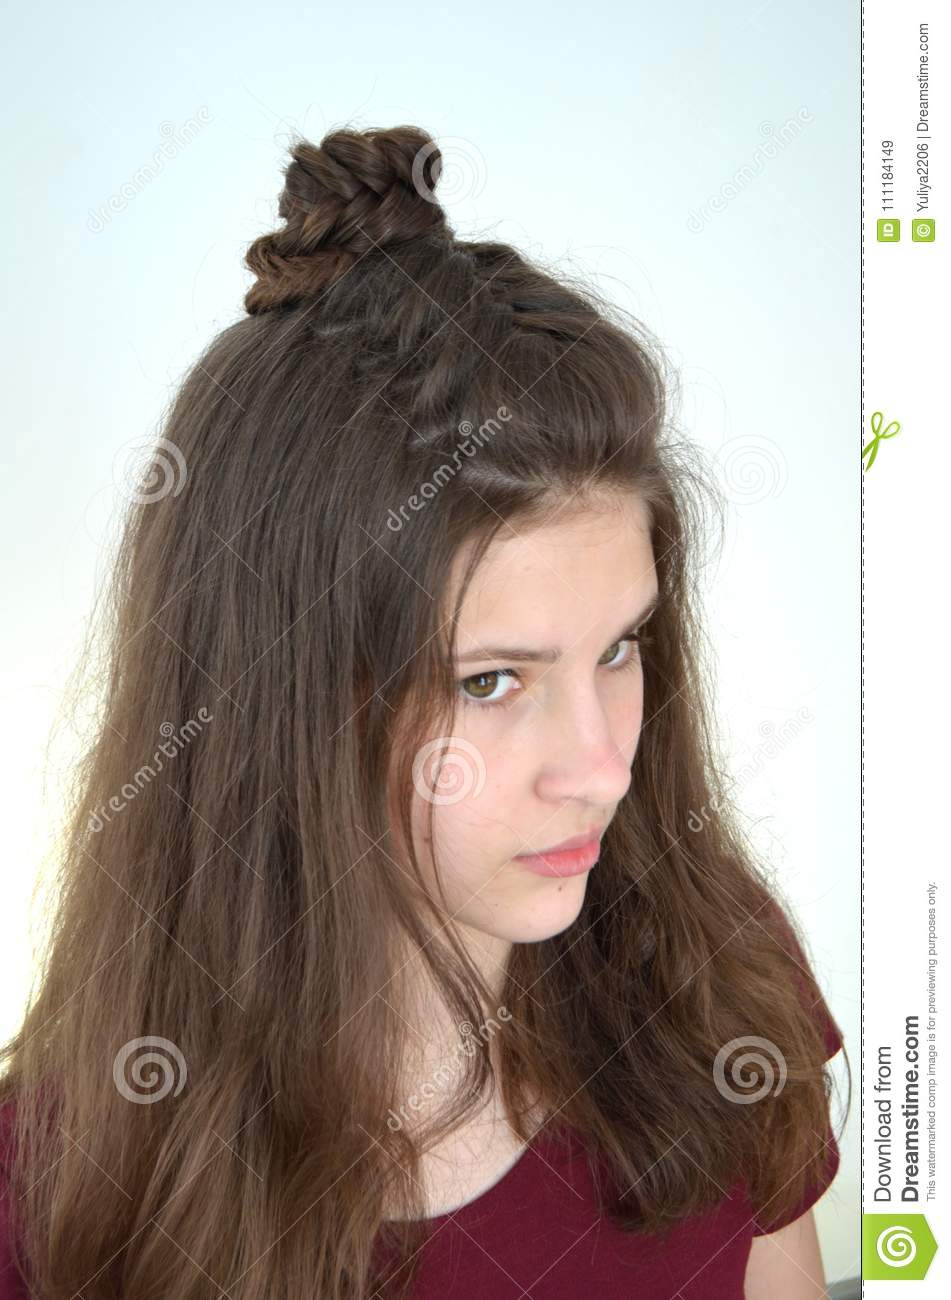 Mastery Of Weaving From Hair With Long Length Of Hair Stock Image